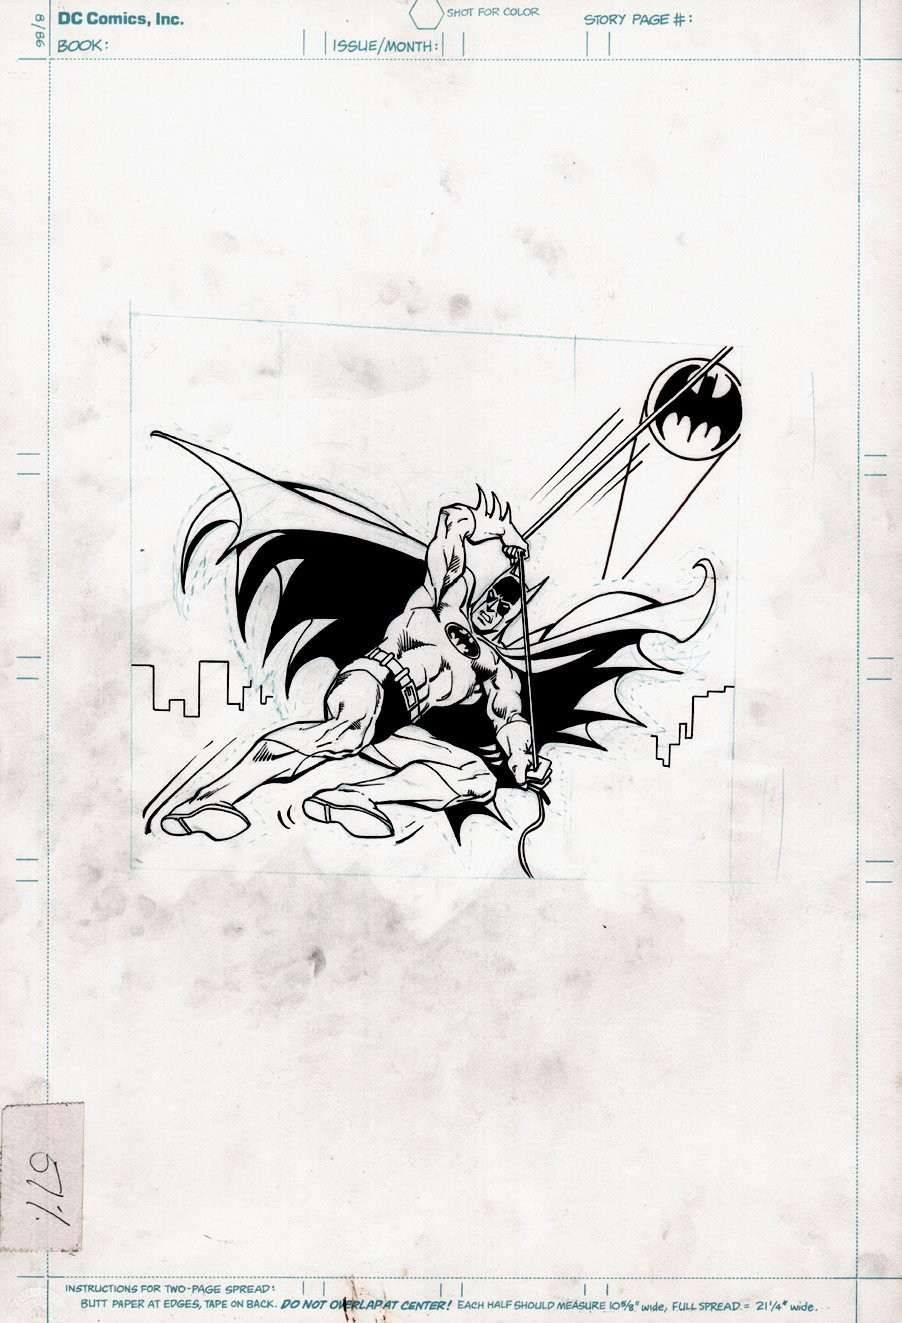 Batman Merchandising Pinup(SOLD LIVE ON 'DUELING DEALERS OF COMIC ART' EPISODE #17 PODCAST ON 5-12-2021 (RE-WATCH OUR LIVE ART SELLING PODCAST